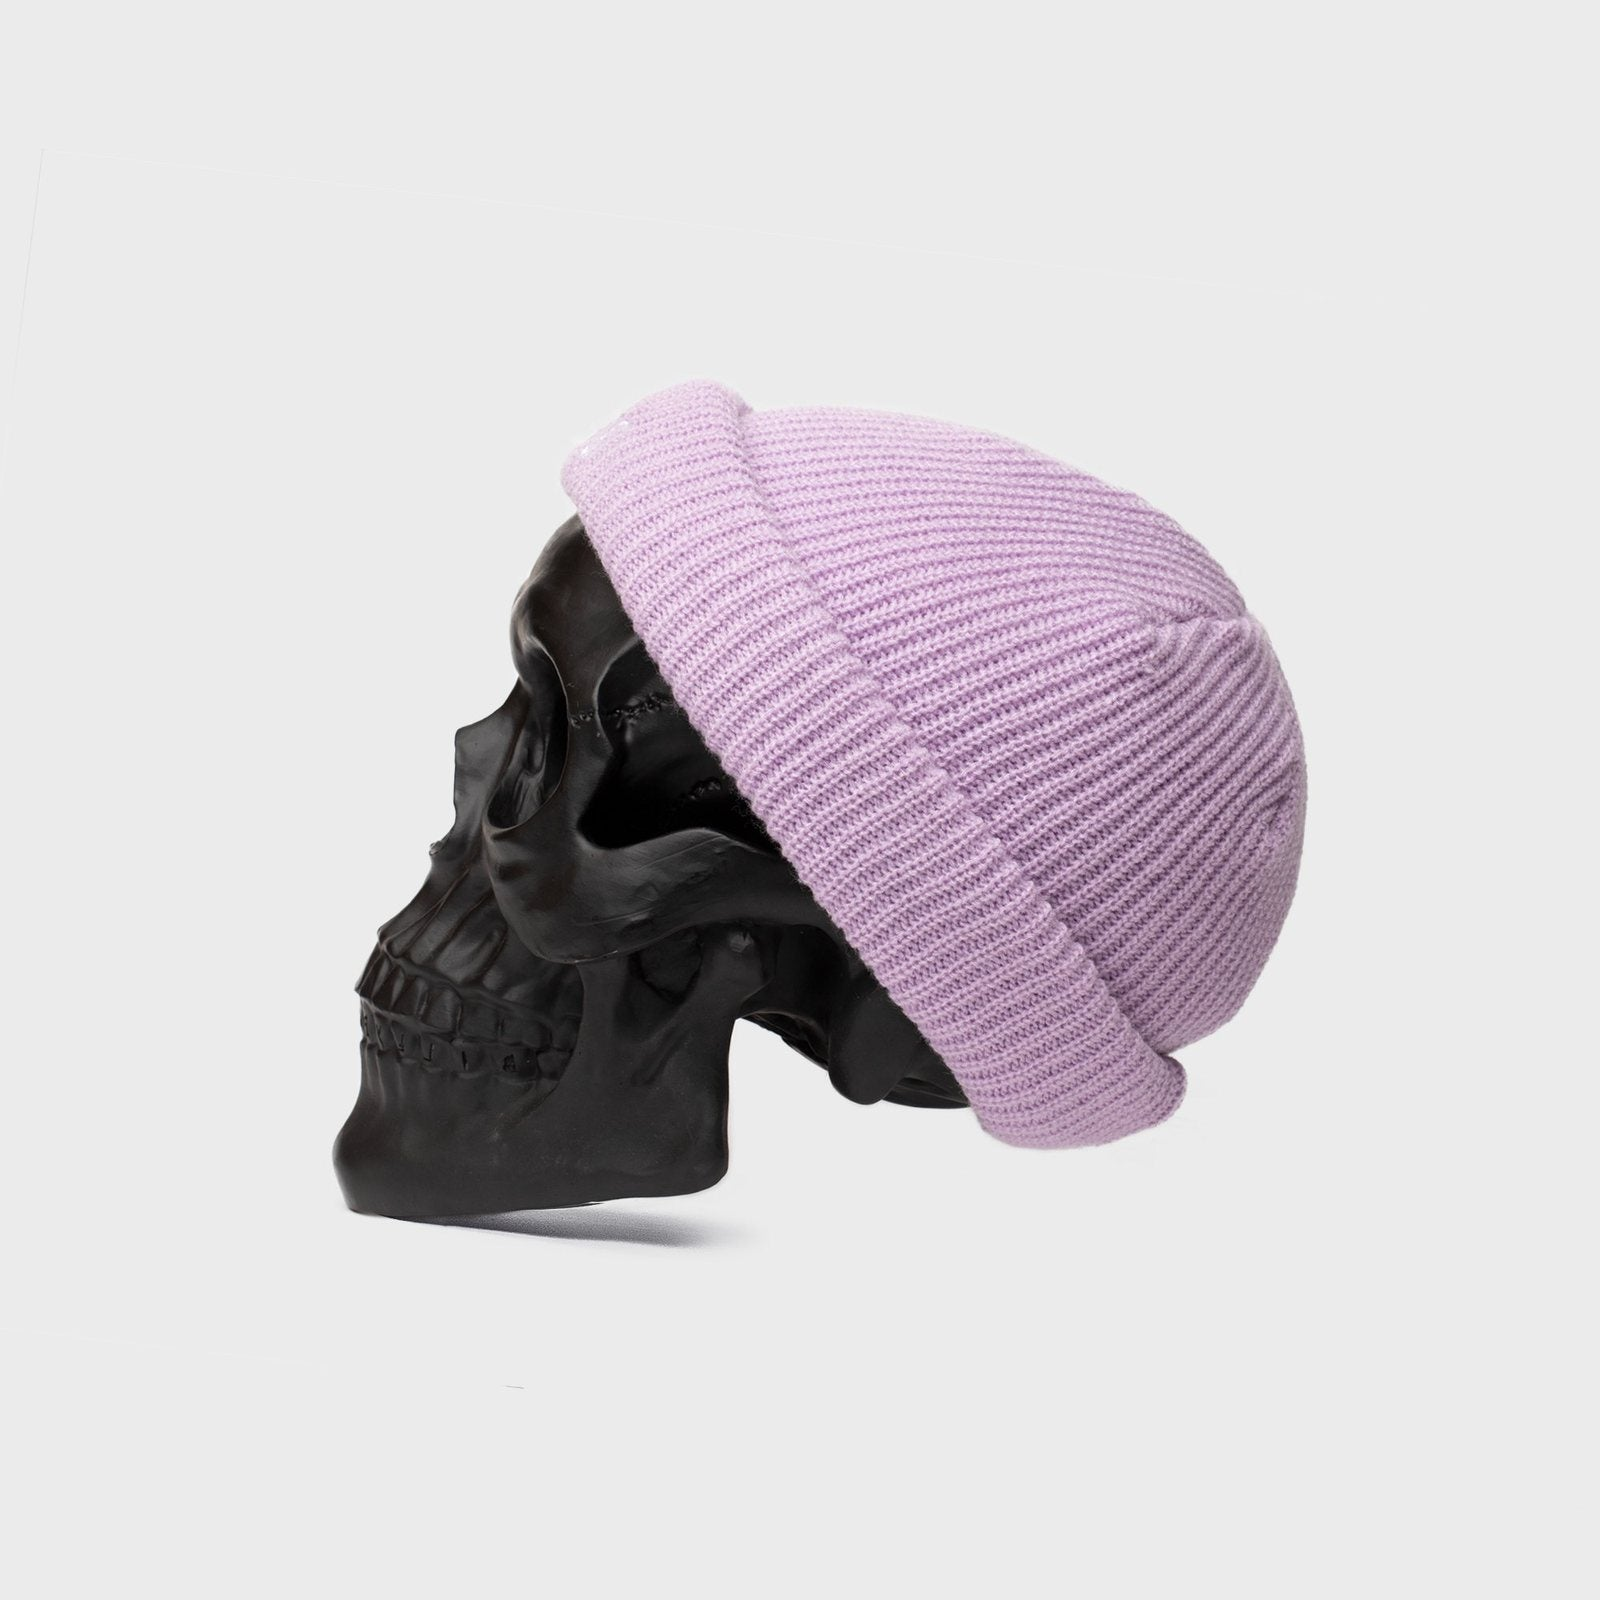 BILLY BONES  //  Docker Knit Beanie PURPLE BONES